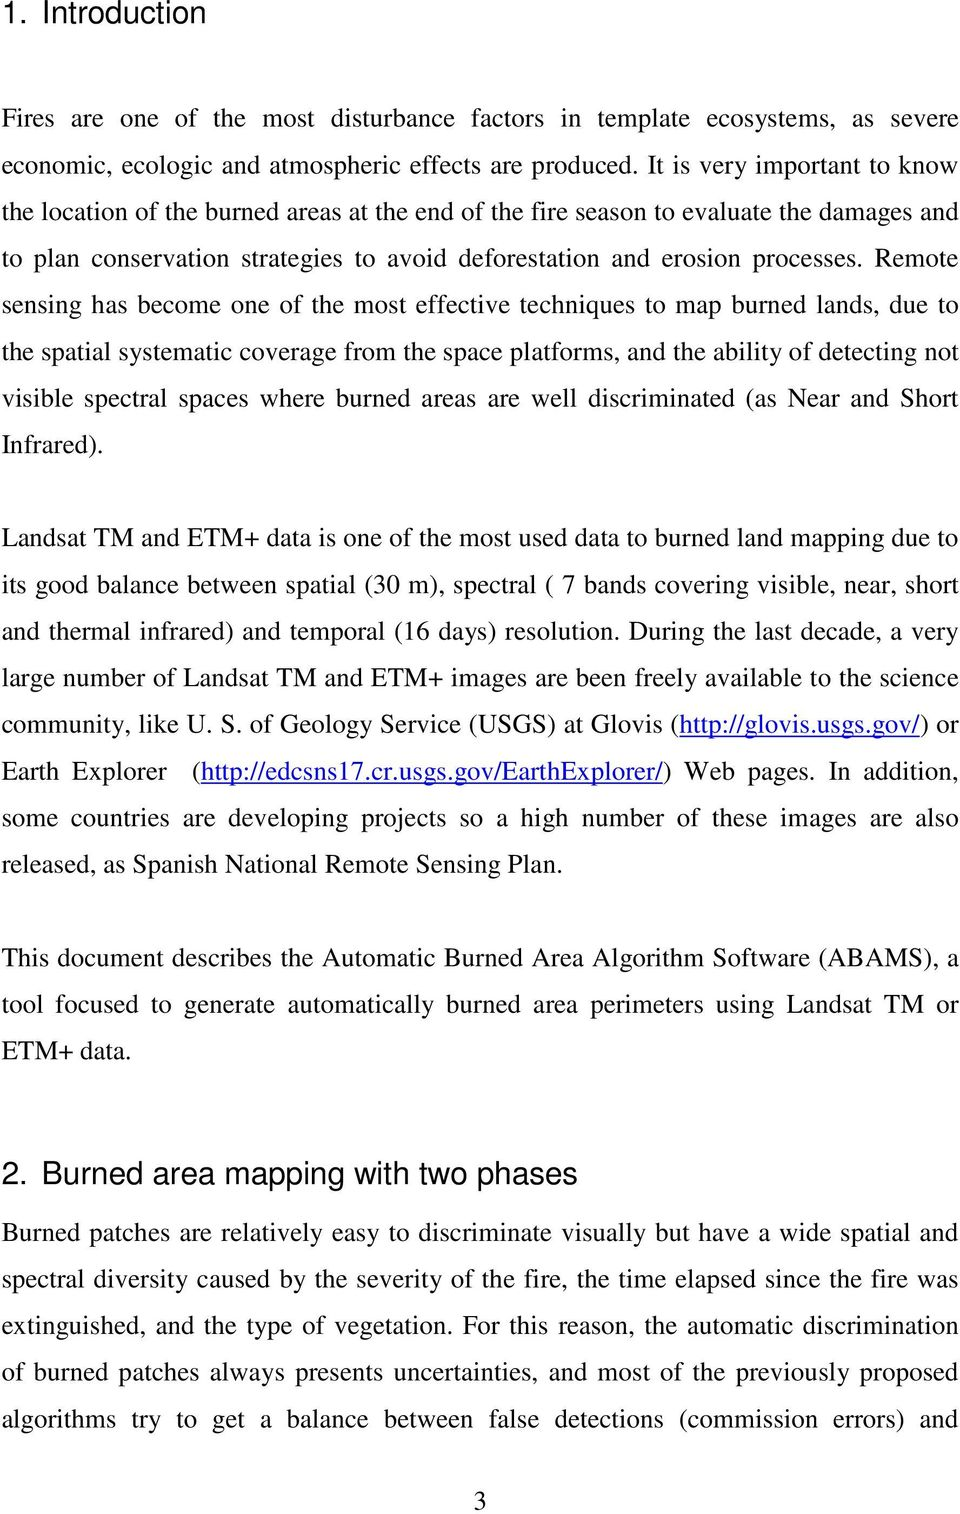 Remote sensing has become one of the most effective techniques to map burned lands, due to the spatial systematic coverage from the space platforms, and the ability of detecting not visible spectral